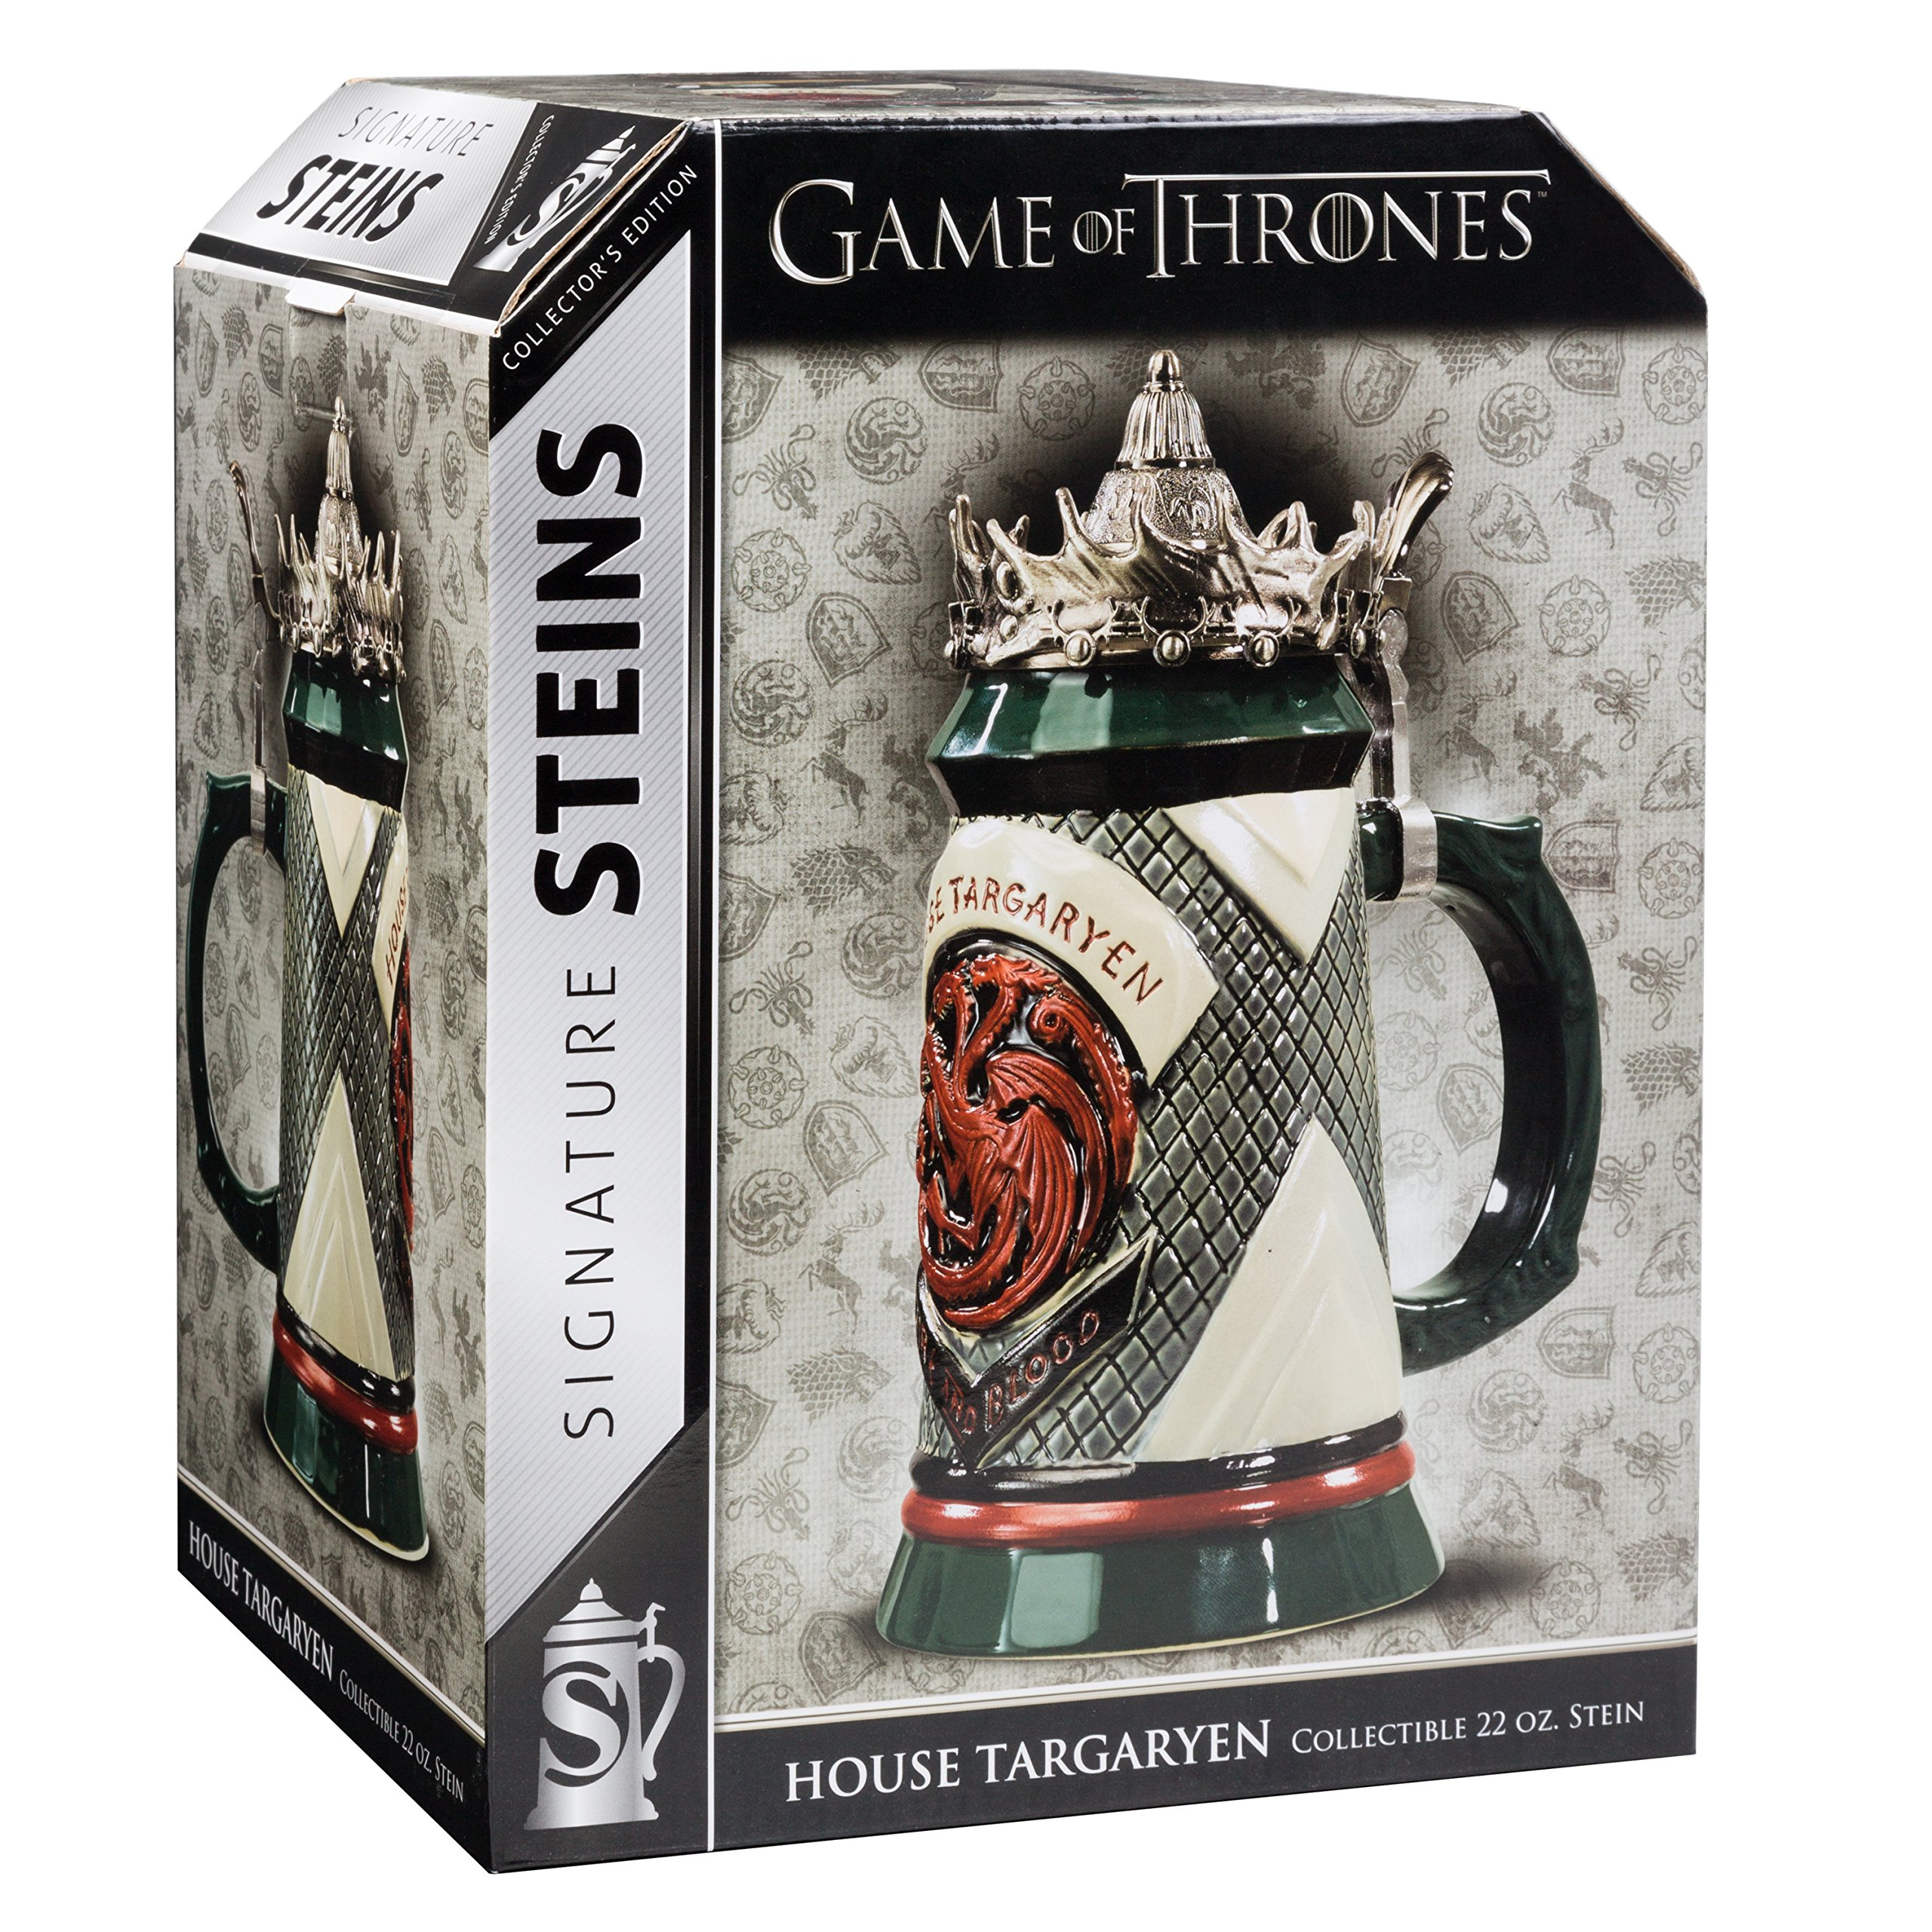 Game of Thrones House Targaryen Stein - 22 Oz Ceramic Base with Pewter Baratheon Crown Top by Game of Thrones (Image #8)